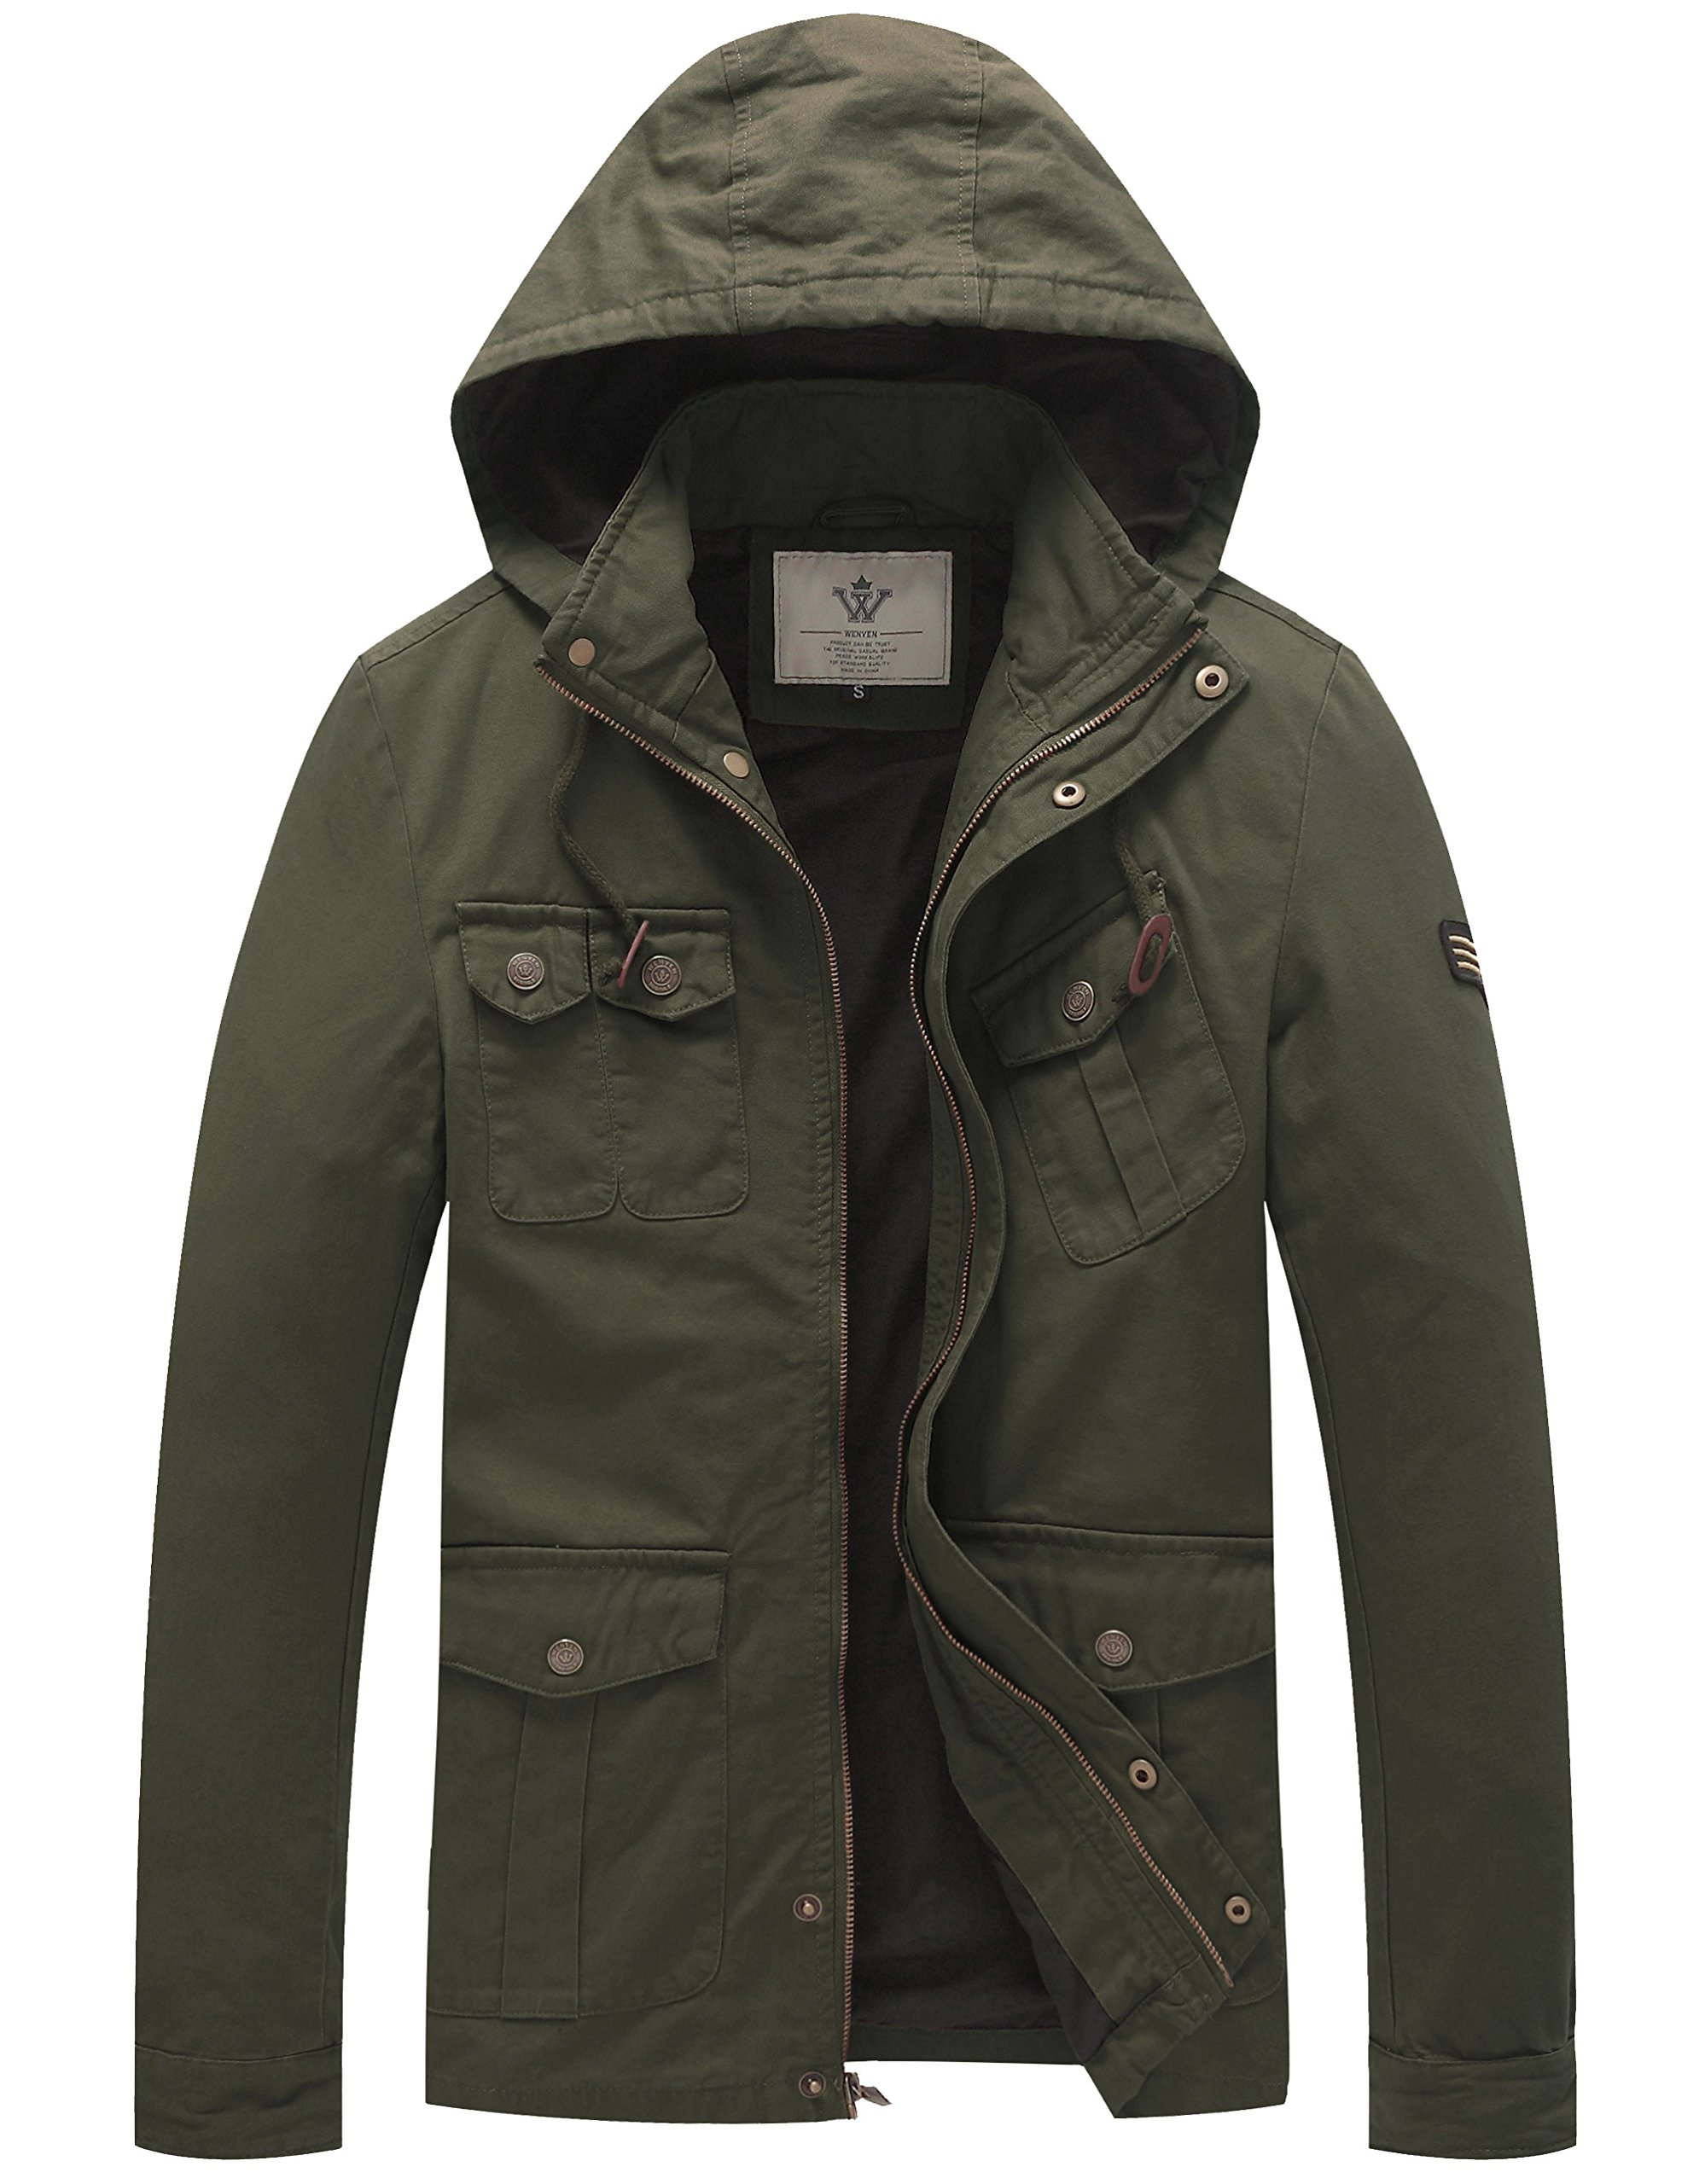 WenVen Men's Hooded Cotton Military Jackets (Military Green, Small) by WenVen